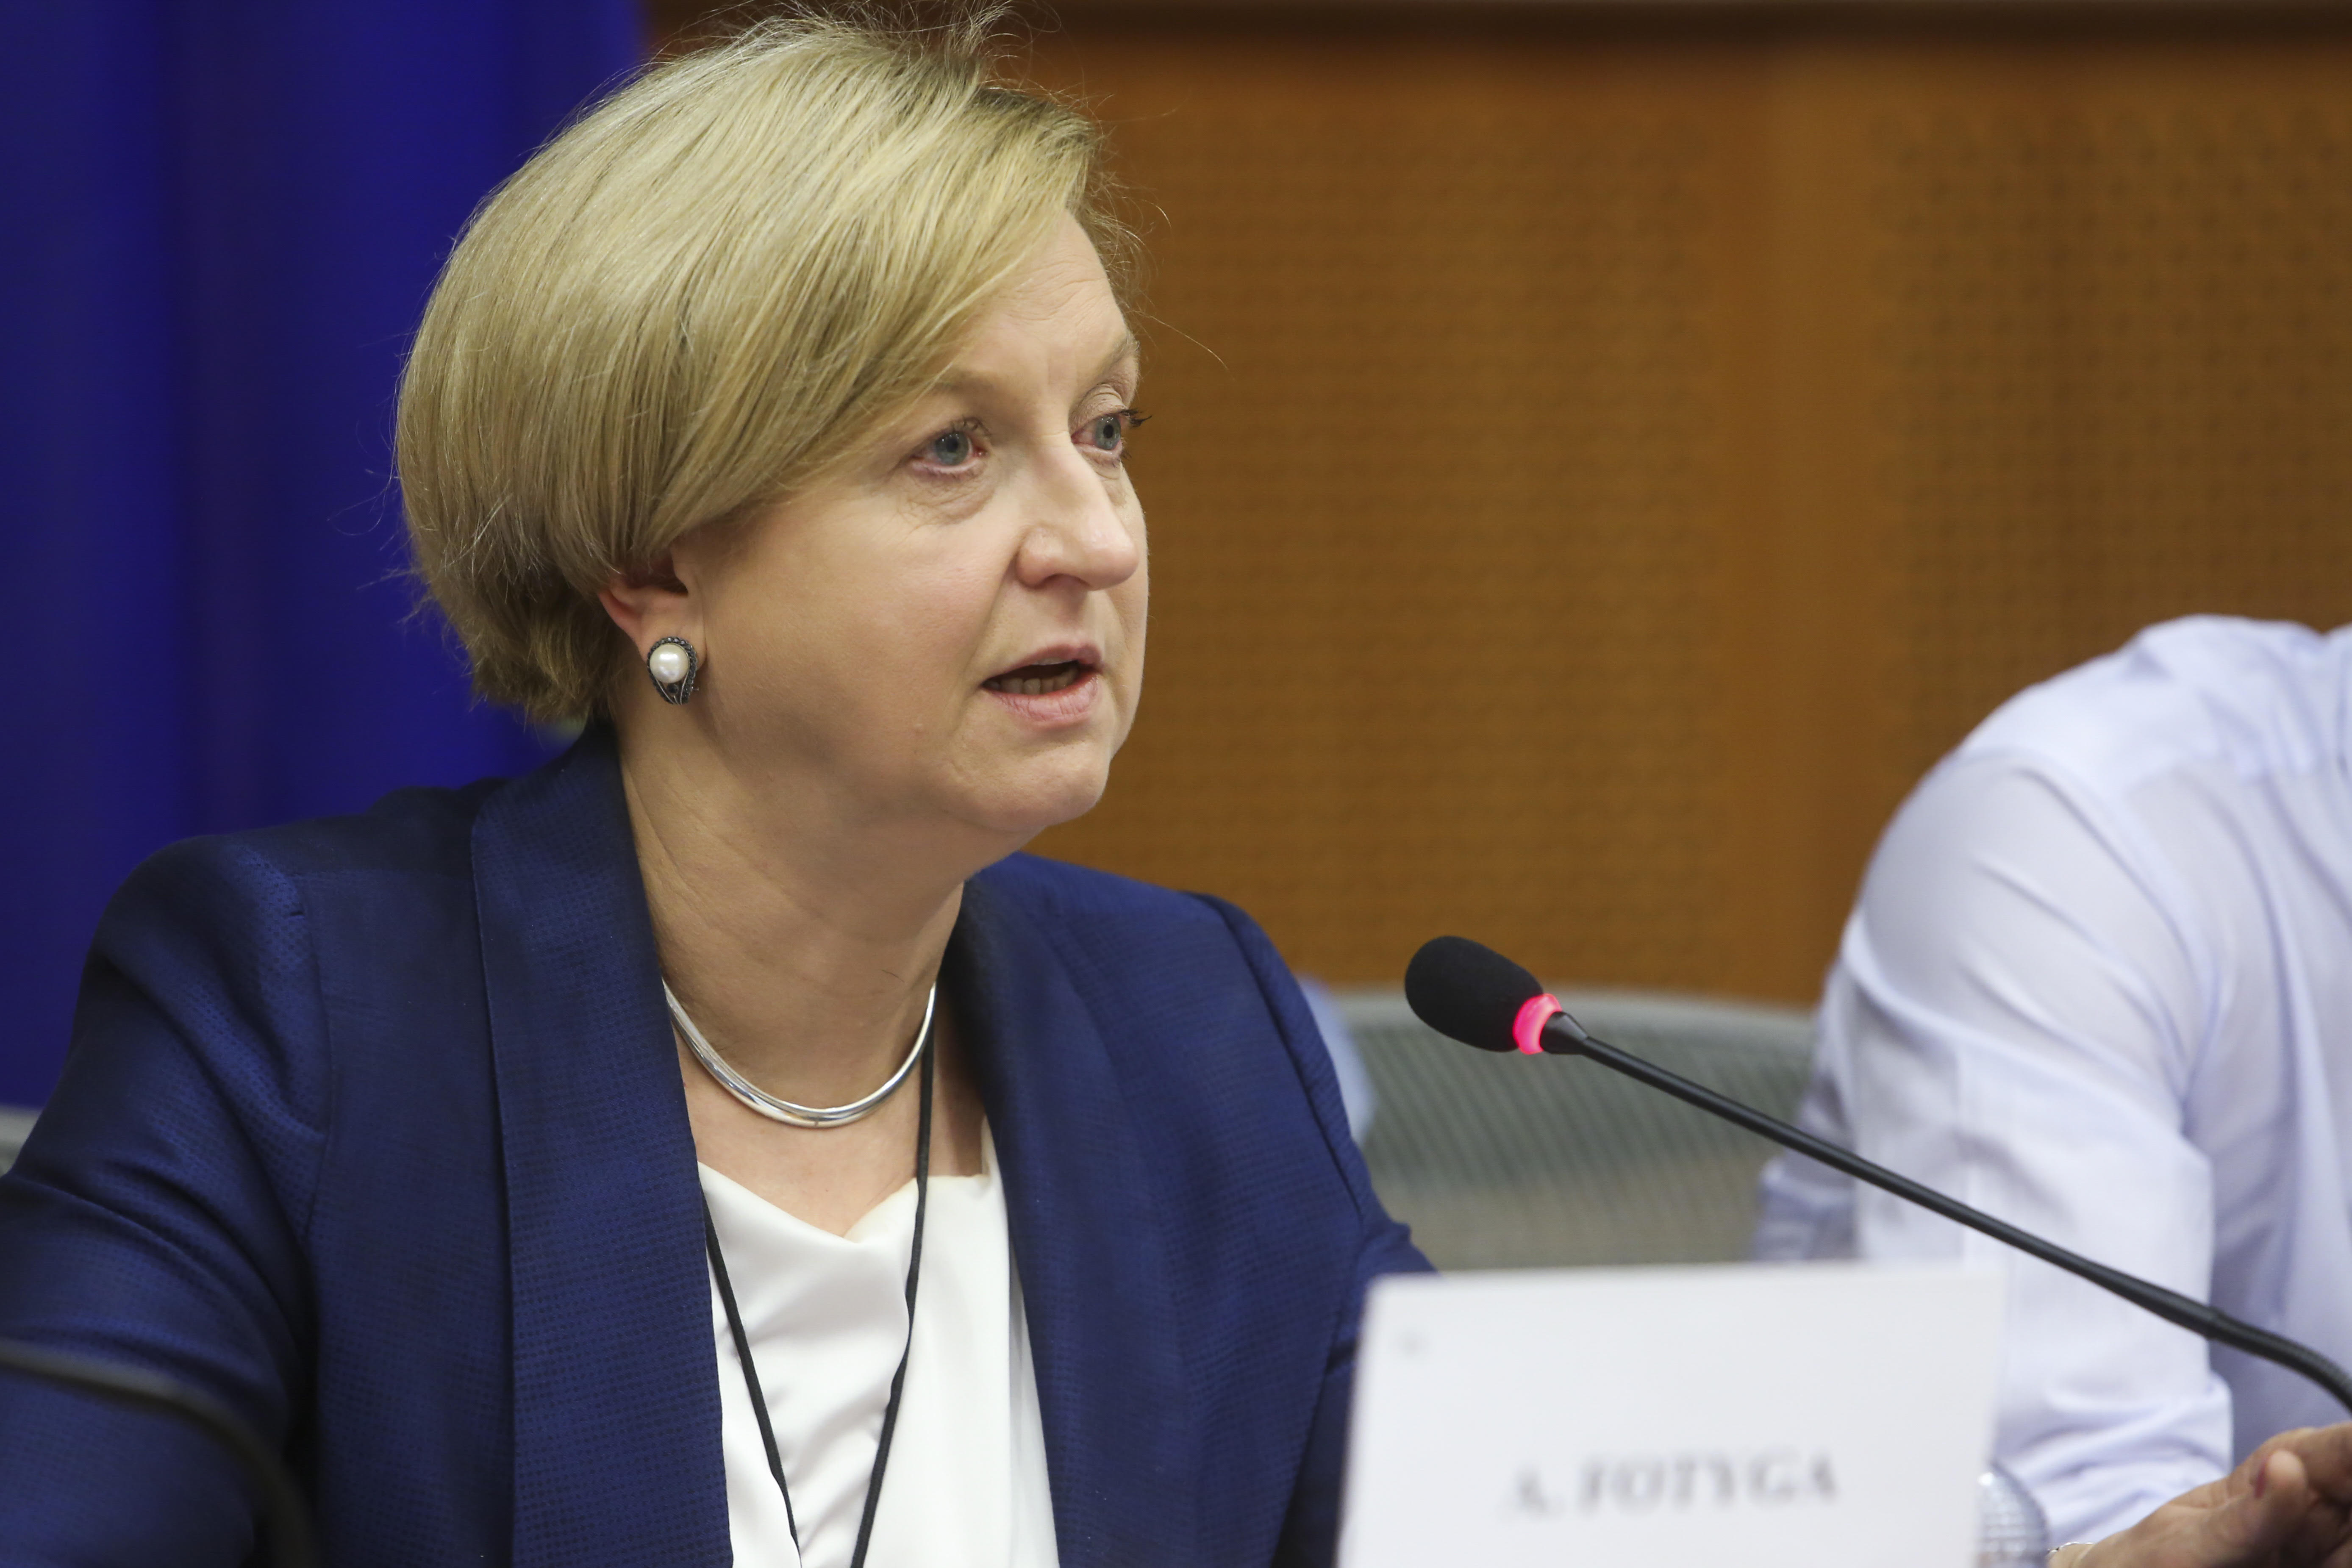 Be aware of Russian and ISIS propaganda, warn foreign affairs MEP's